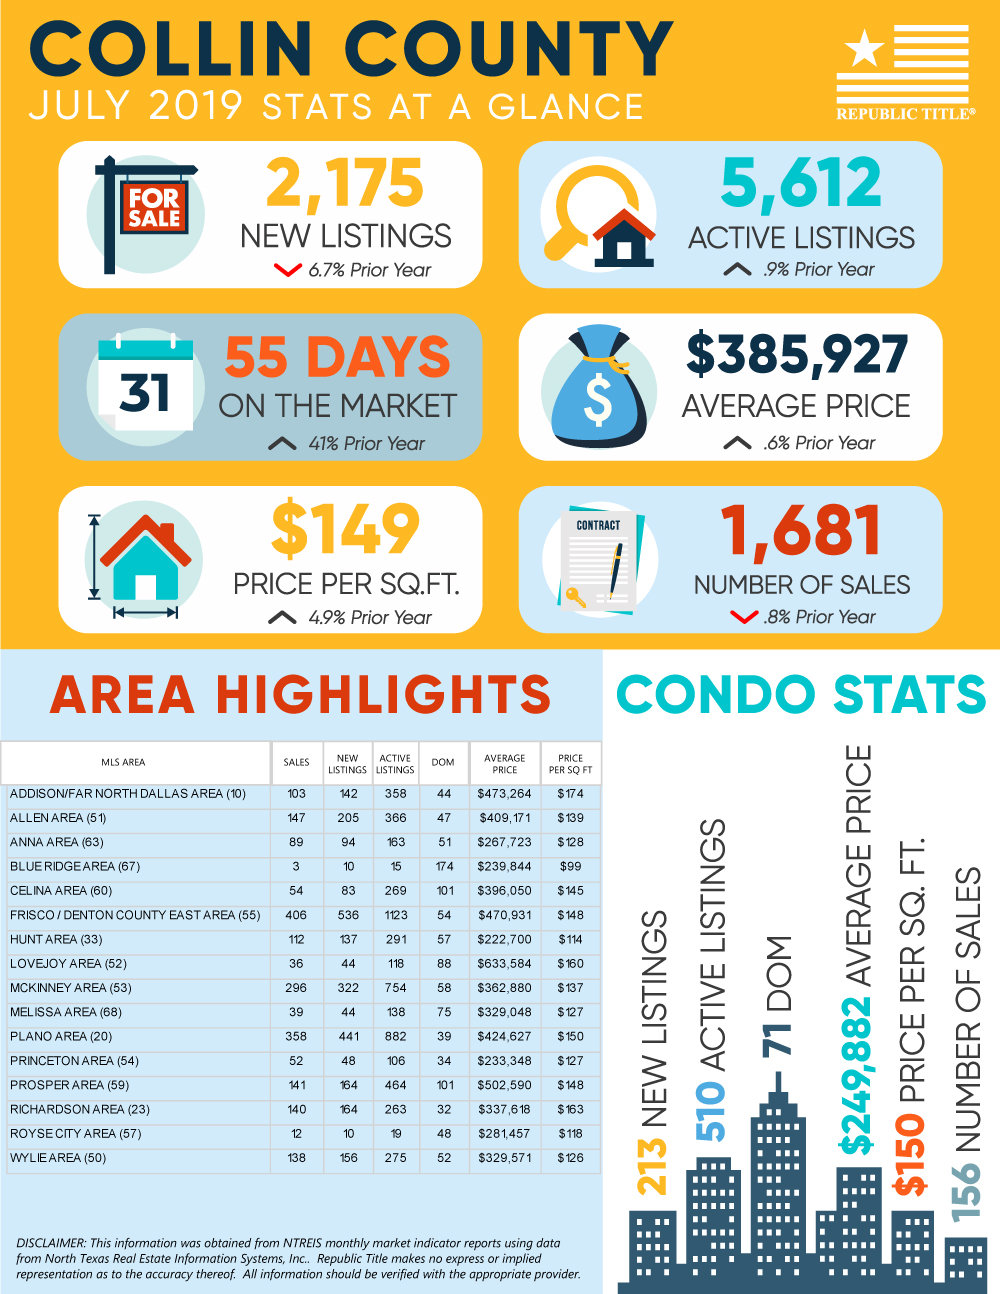 Collin County Housing Market Update - Home and Condo Stats July 2019